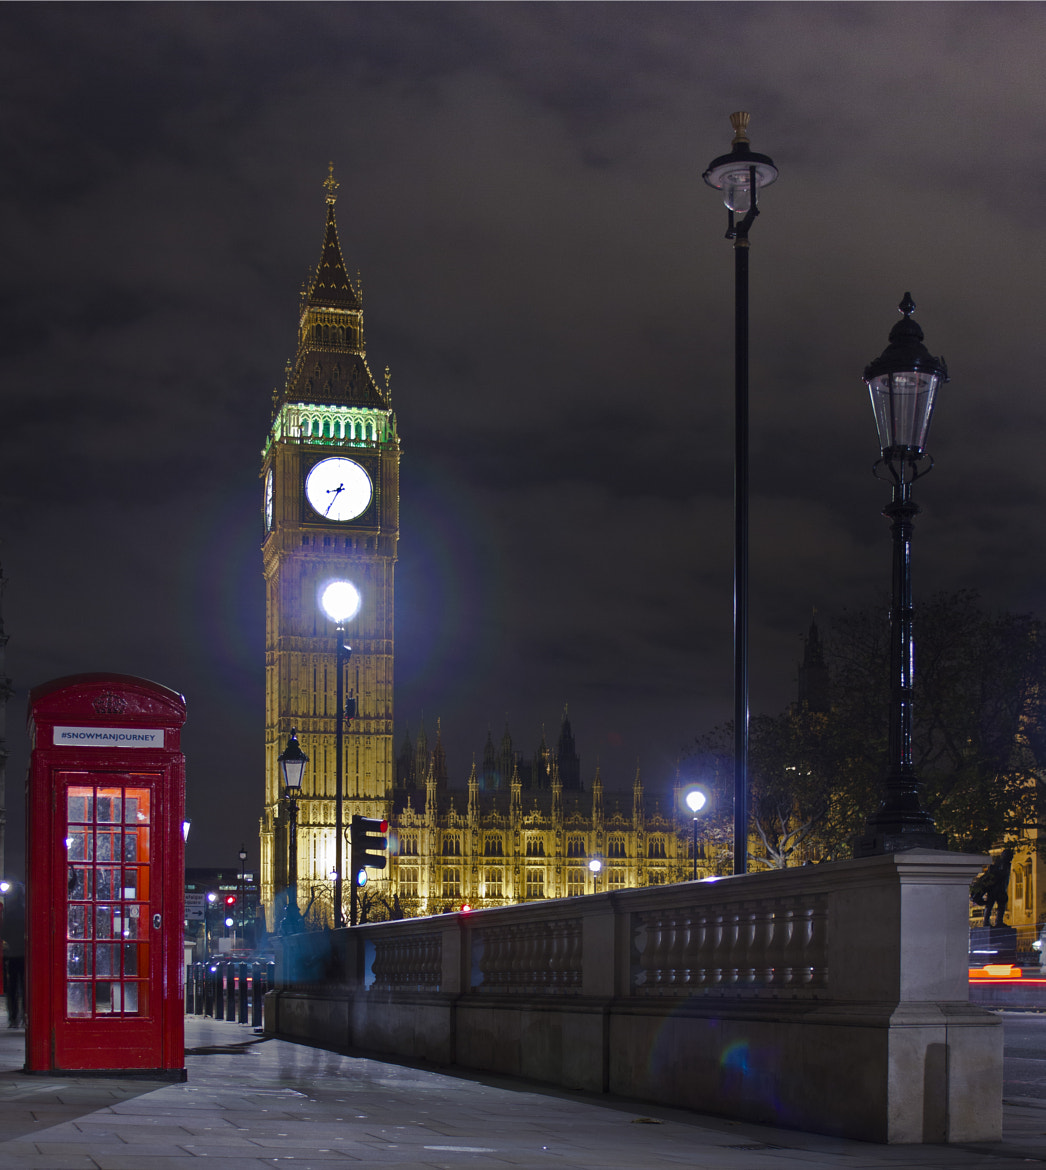 Photograph Hotline to Parliment by Steve Clancy on 500px